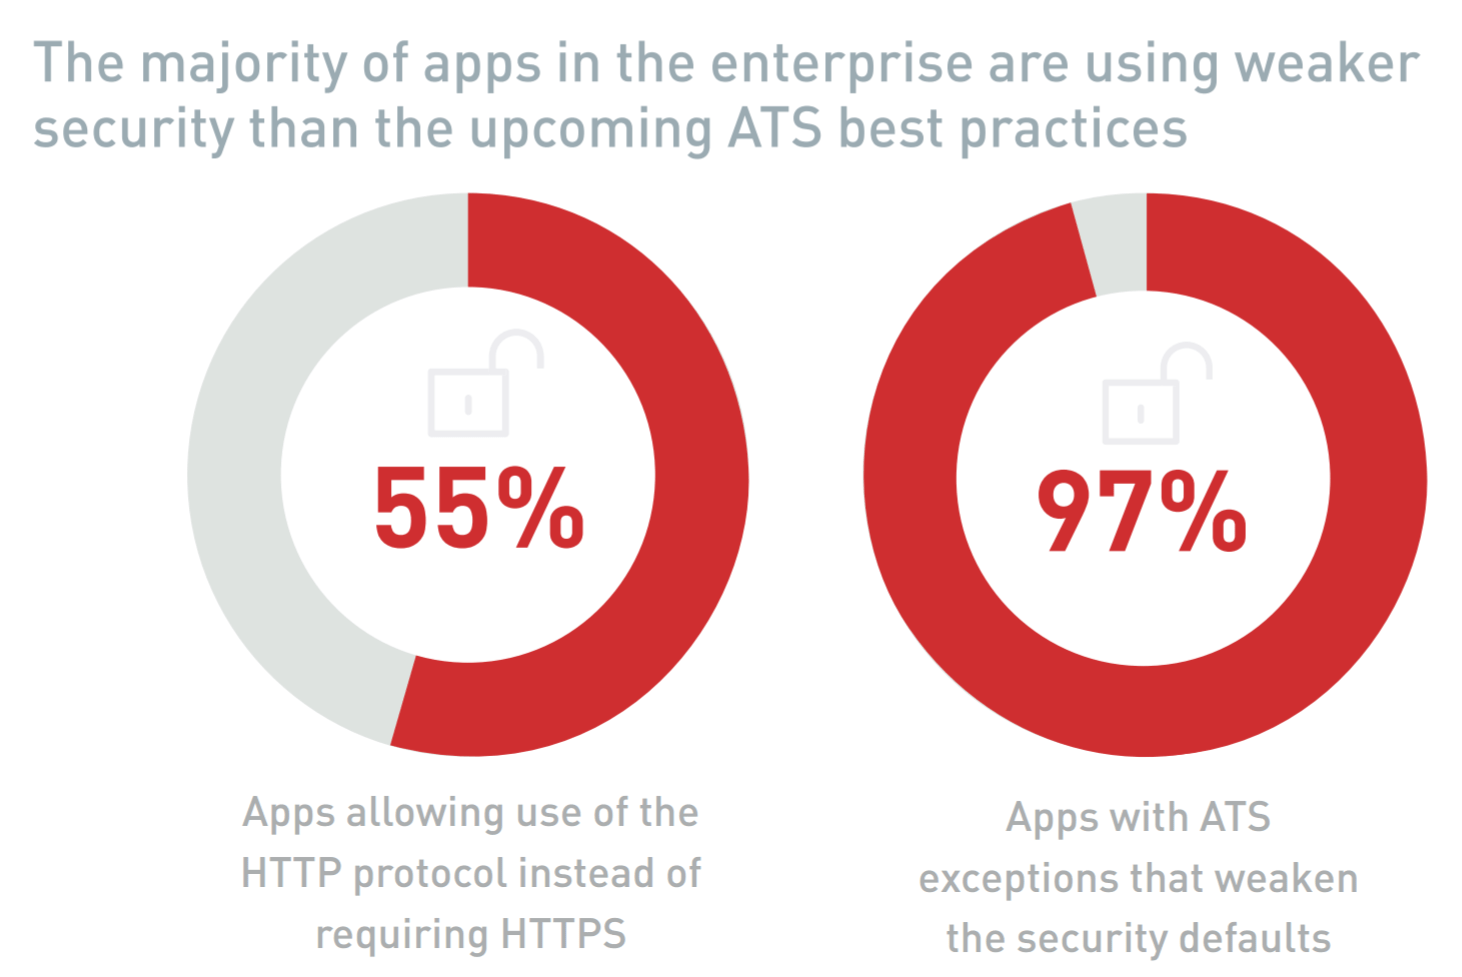 Only 3% of Apps in Enterprises Meet Apple's Upcoming Security Mandate TechNative